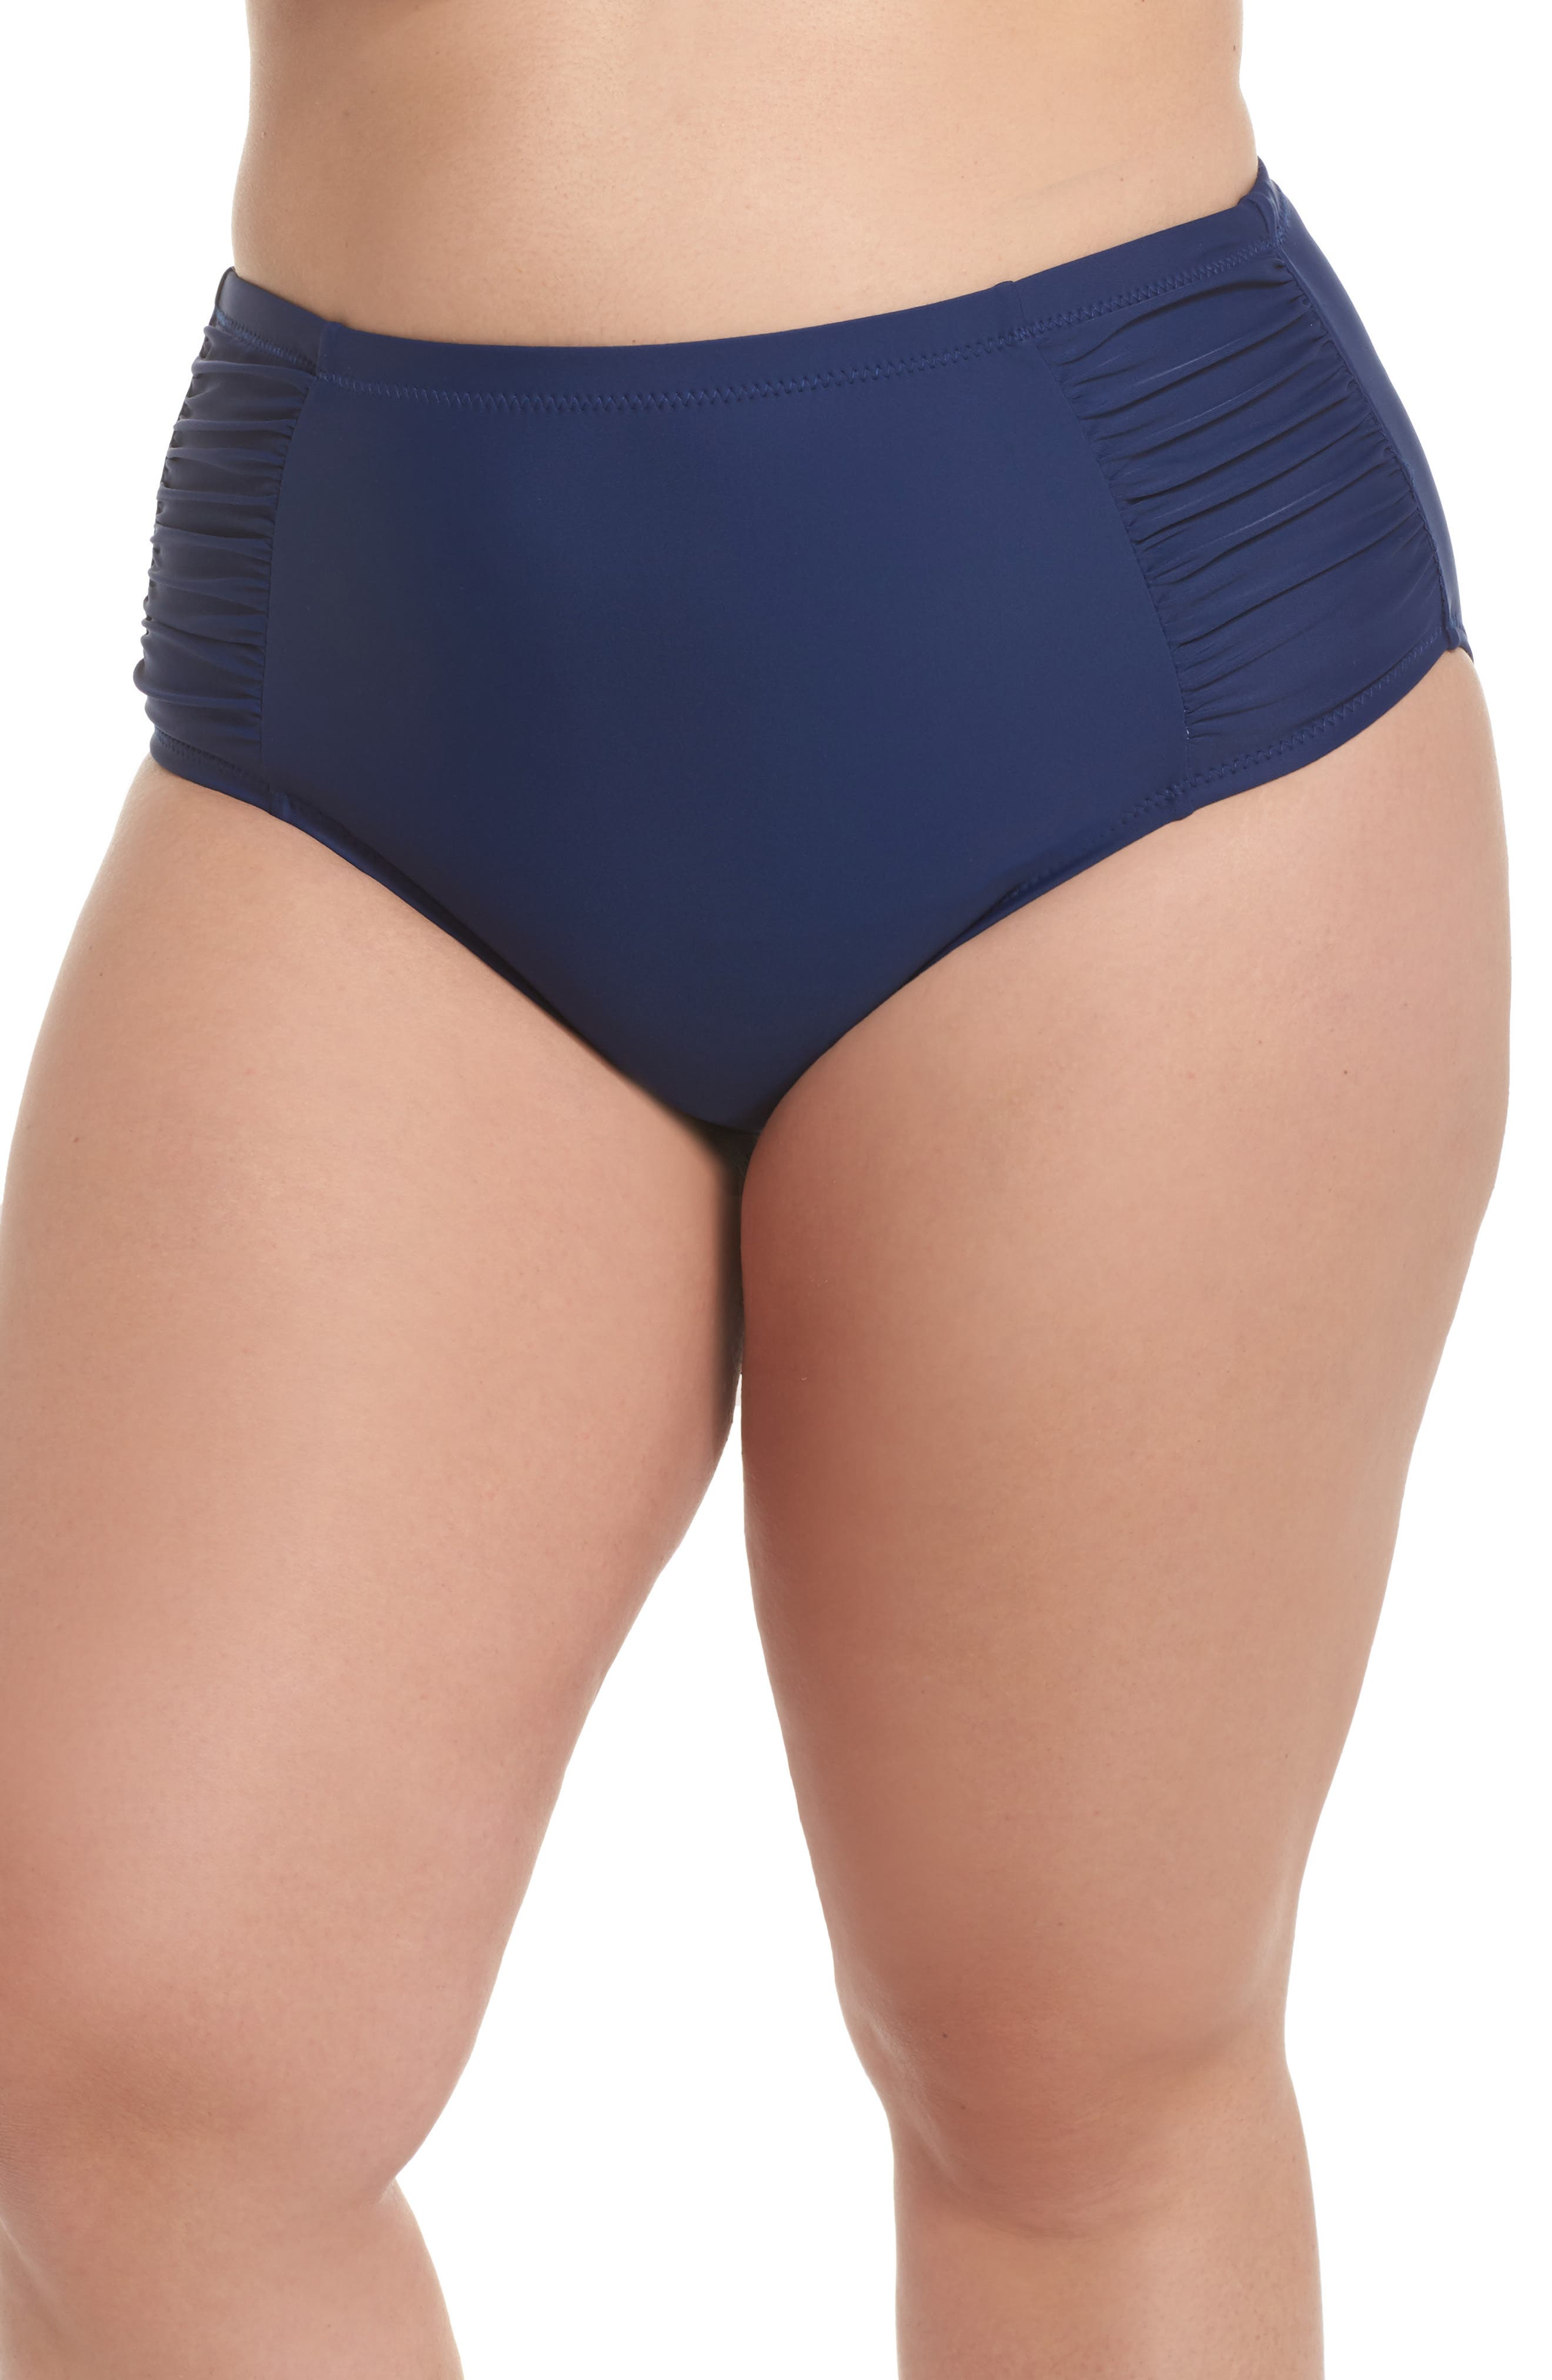 Alternate Image 1 Selected - Jessica Simpson Shirred High Waist Bikini Bottoms (Plus Size)